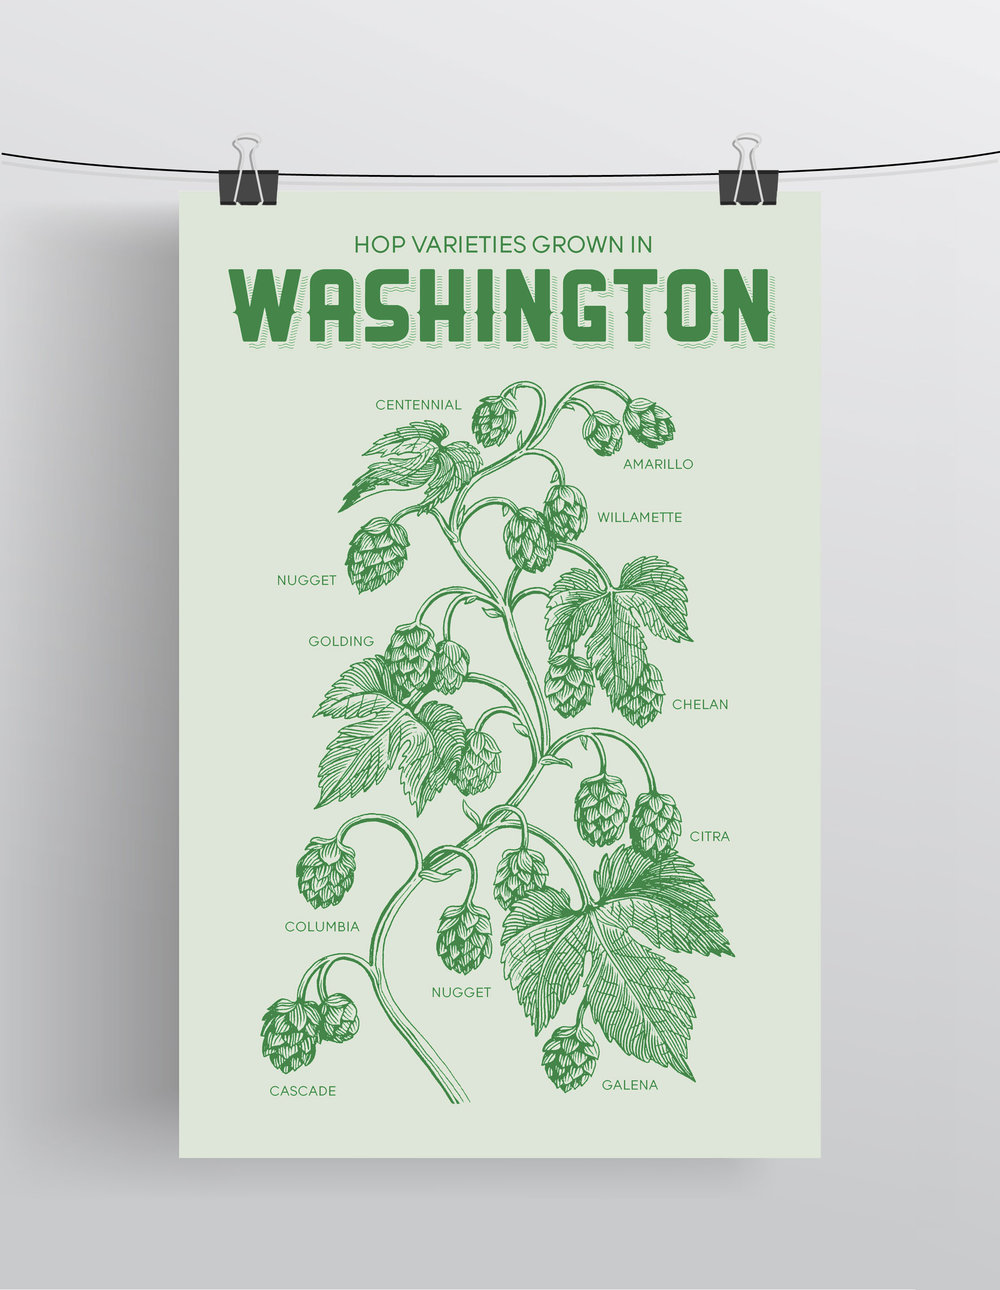 Washington Hop Varieties  Screenprint